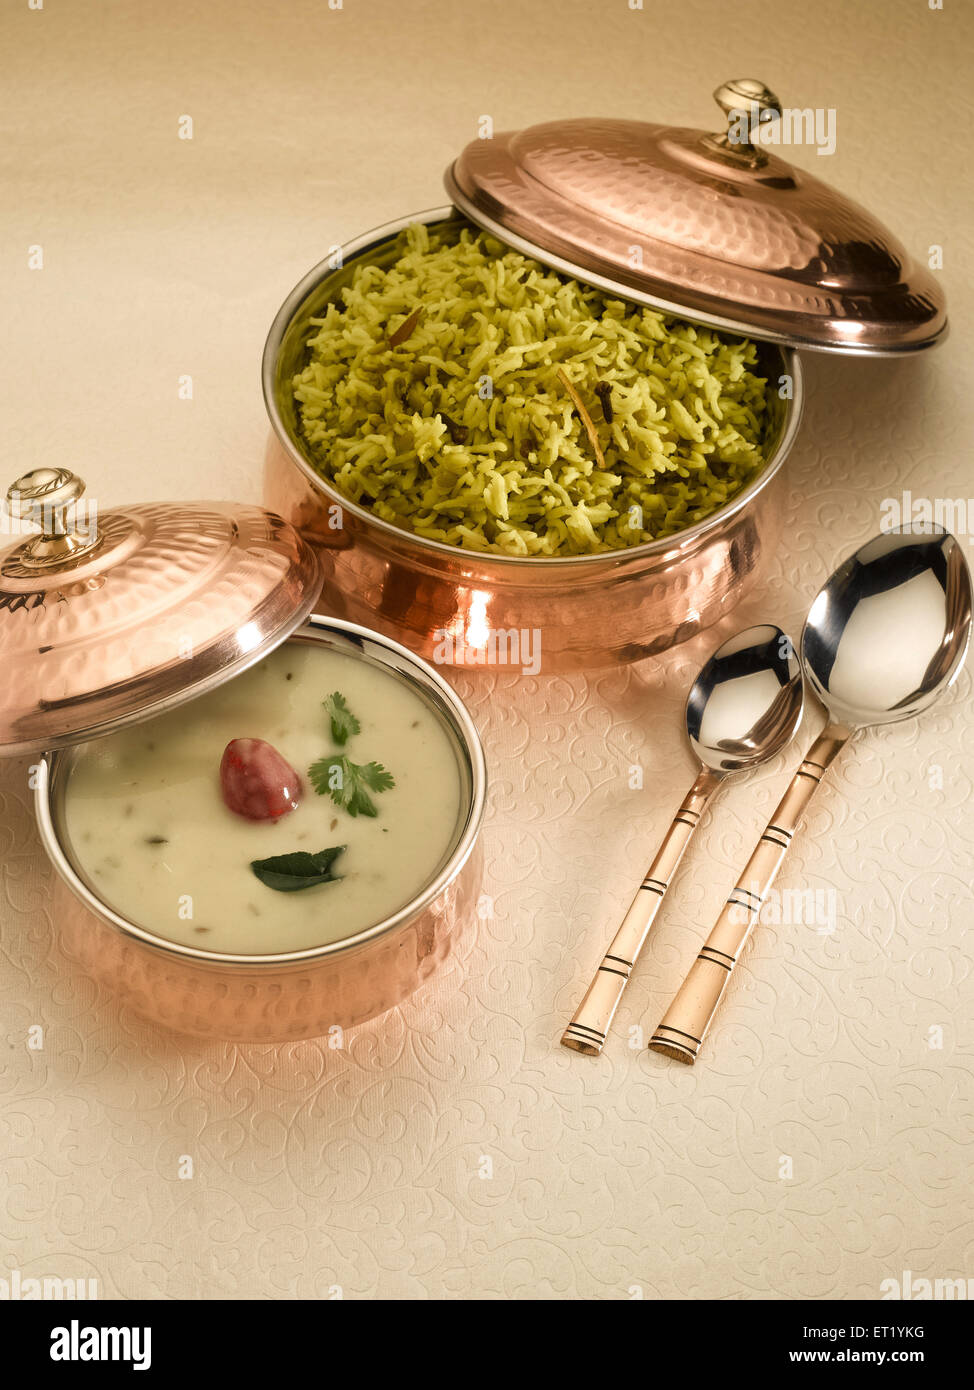 Food ; mung dal khichdi with kadhi served in pots - Stock Image